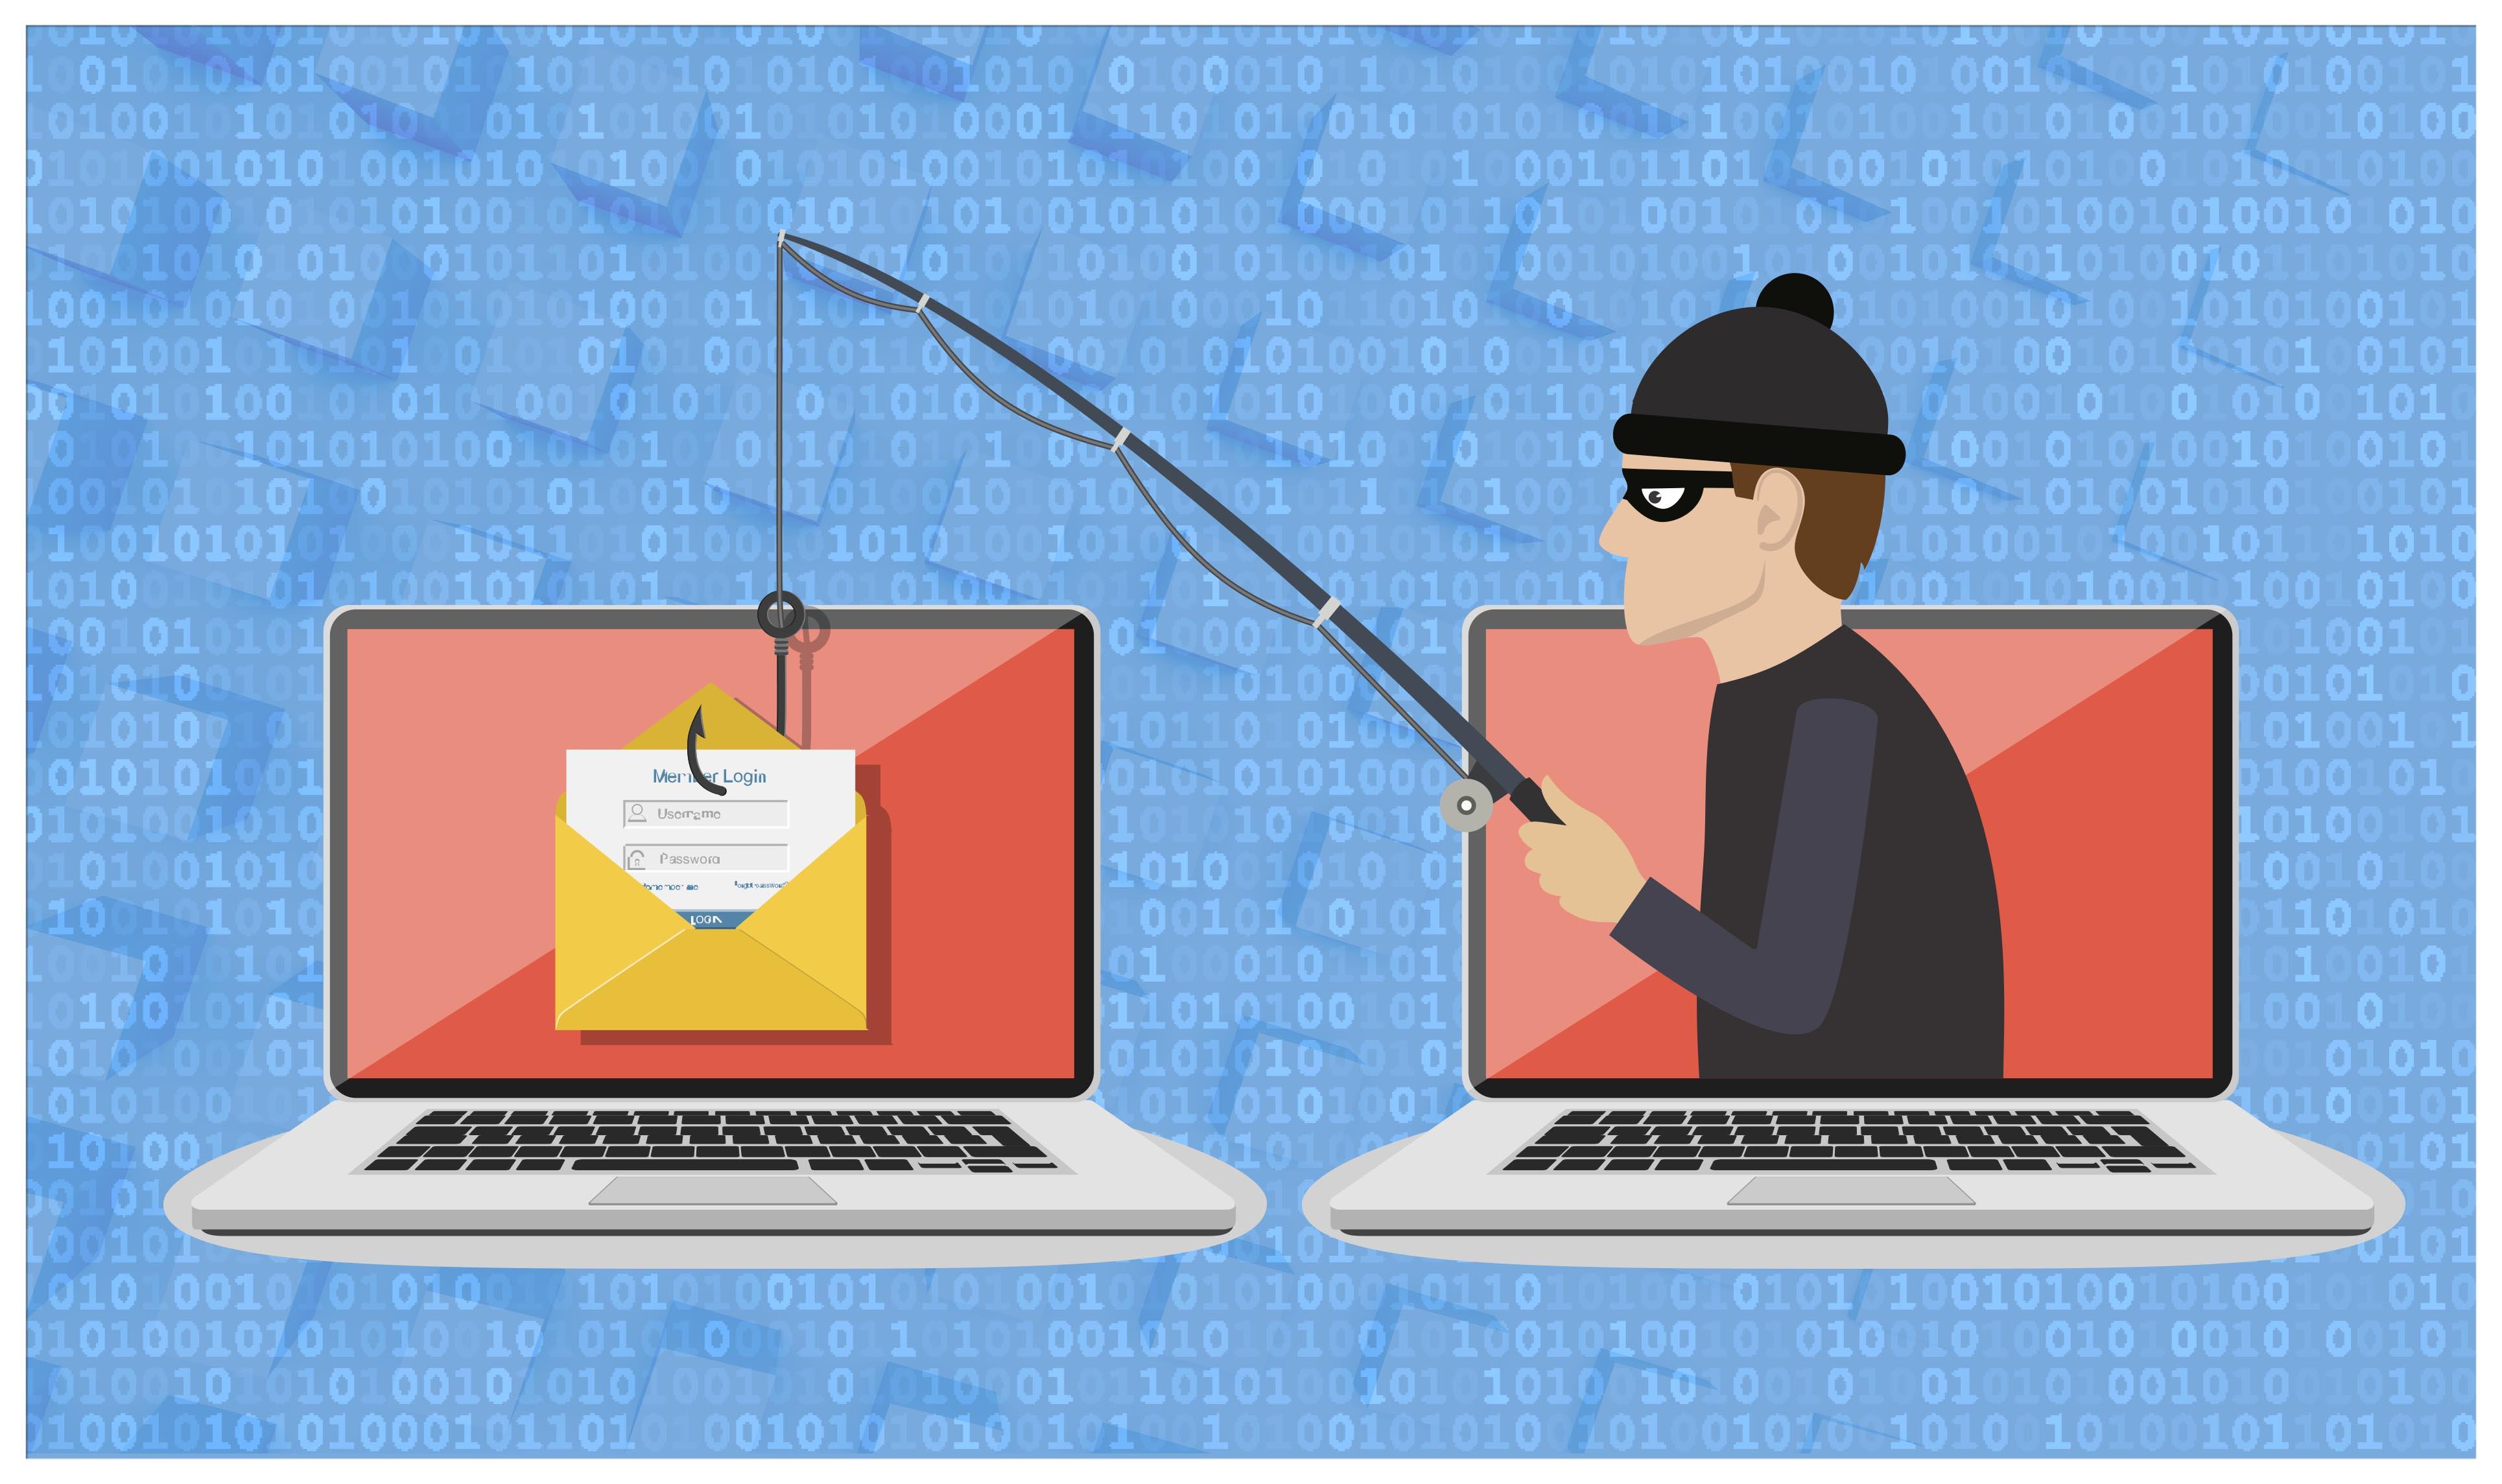 How to Identify Phishing Attacks